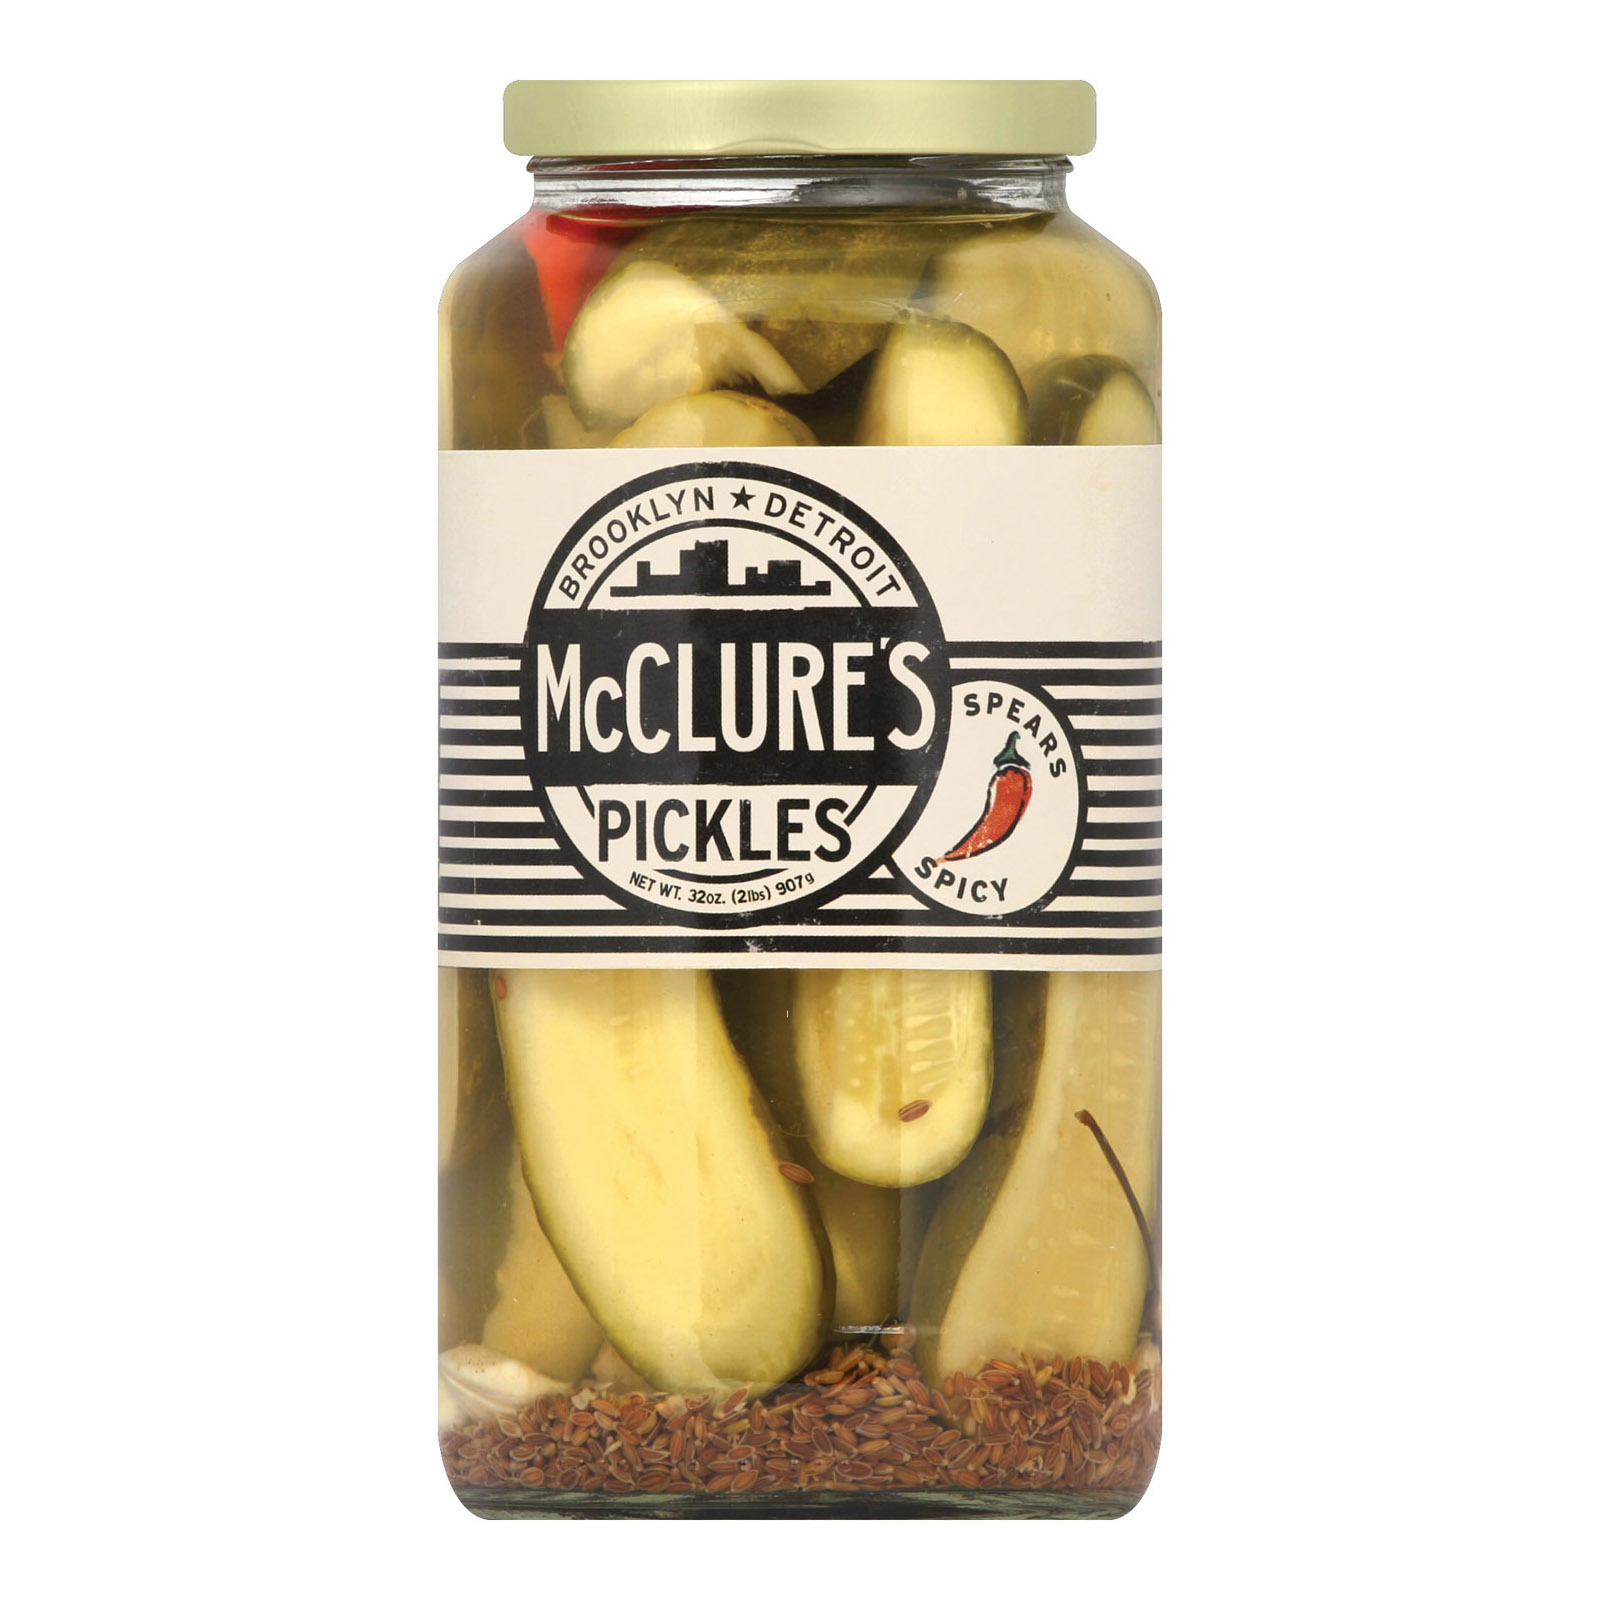 McClure's Pickles Spicy Spears - Case of 6 - 32 oz.